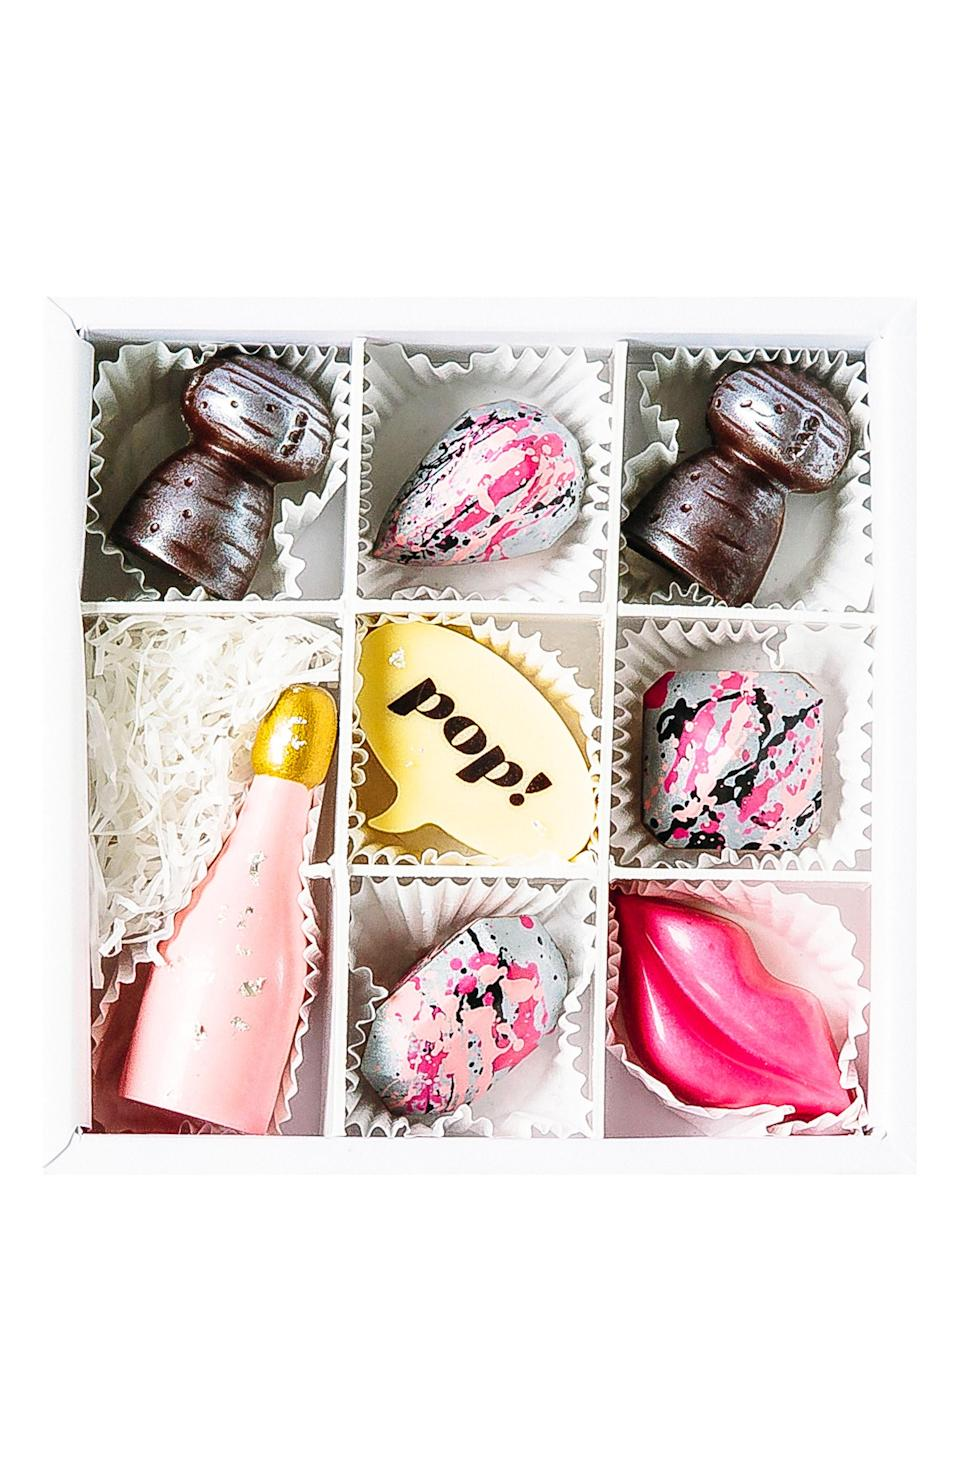 "<p><strong>Maggie Louise Confections</strong></p><p>nordstrom.com</p><p><strong>$38.00</strong></p><p><a href=""https://shop.nordstrom.com/s/maggie-louise-confections-pop-champagne-8-piece-chocolate-set/5055860"" rel=""nofollow noopener"" target=""_blank"" data-ylk=""slk:SHOP NOW"" class=""link rapid-noclick-resp"">SHOP NOW</a></p><p>Take your <a href=""https://www.womansday.com/food-recipes/g2811/valentines-day-cookies/"" rel=""nofollow noopener"" target=""_blank"" data-ylk=""slk:chocolate-gifting game"" class=""link rapid-noclick-resp"">chocolate-gifting game</a> to the next level with this celebration candy set.</p>"